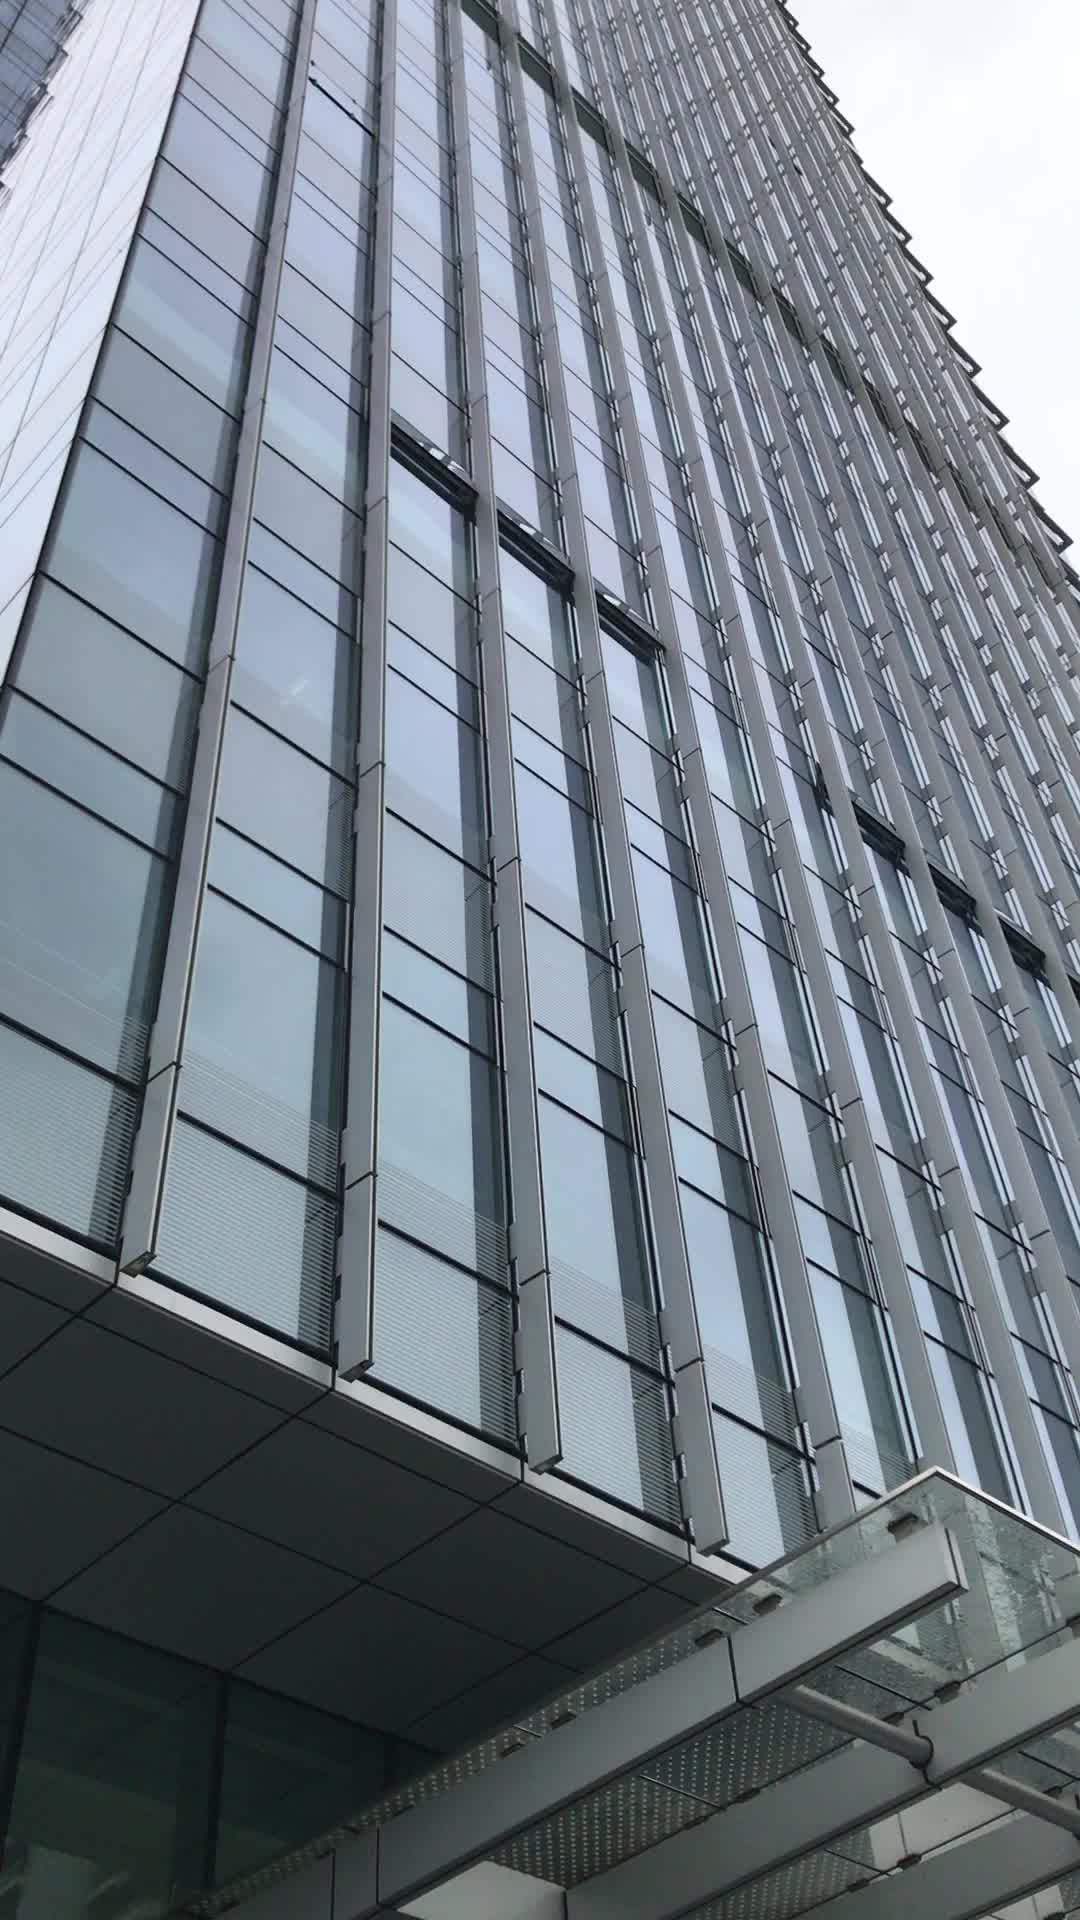 Glazed Aluminum Curtain Wall House : Glass curtain wall for commercial building and residential